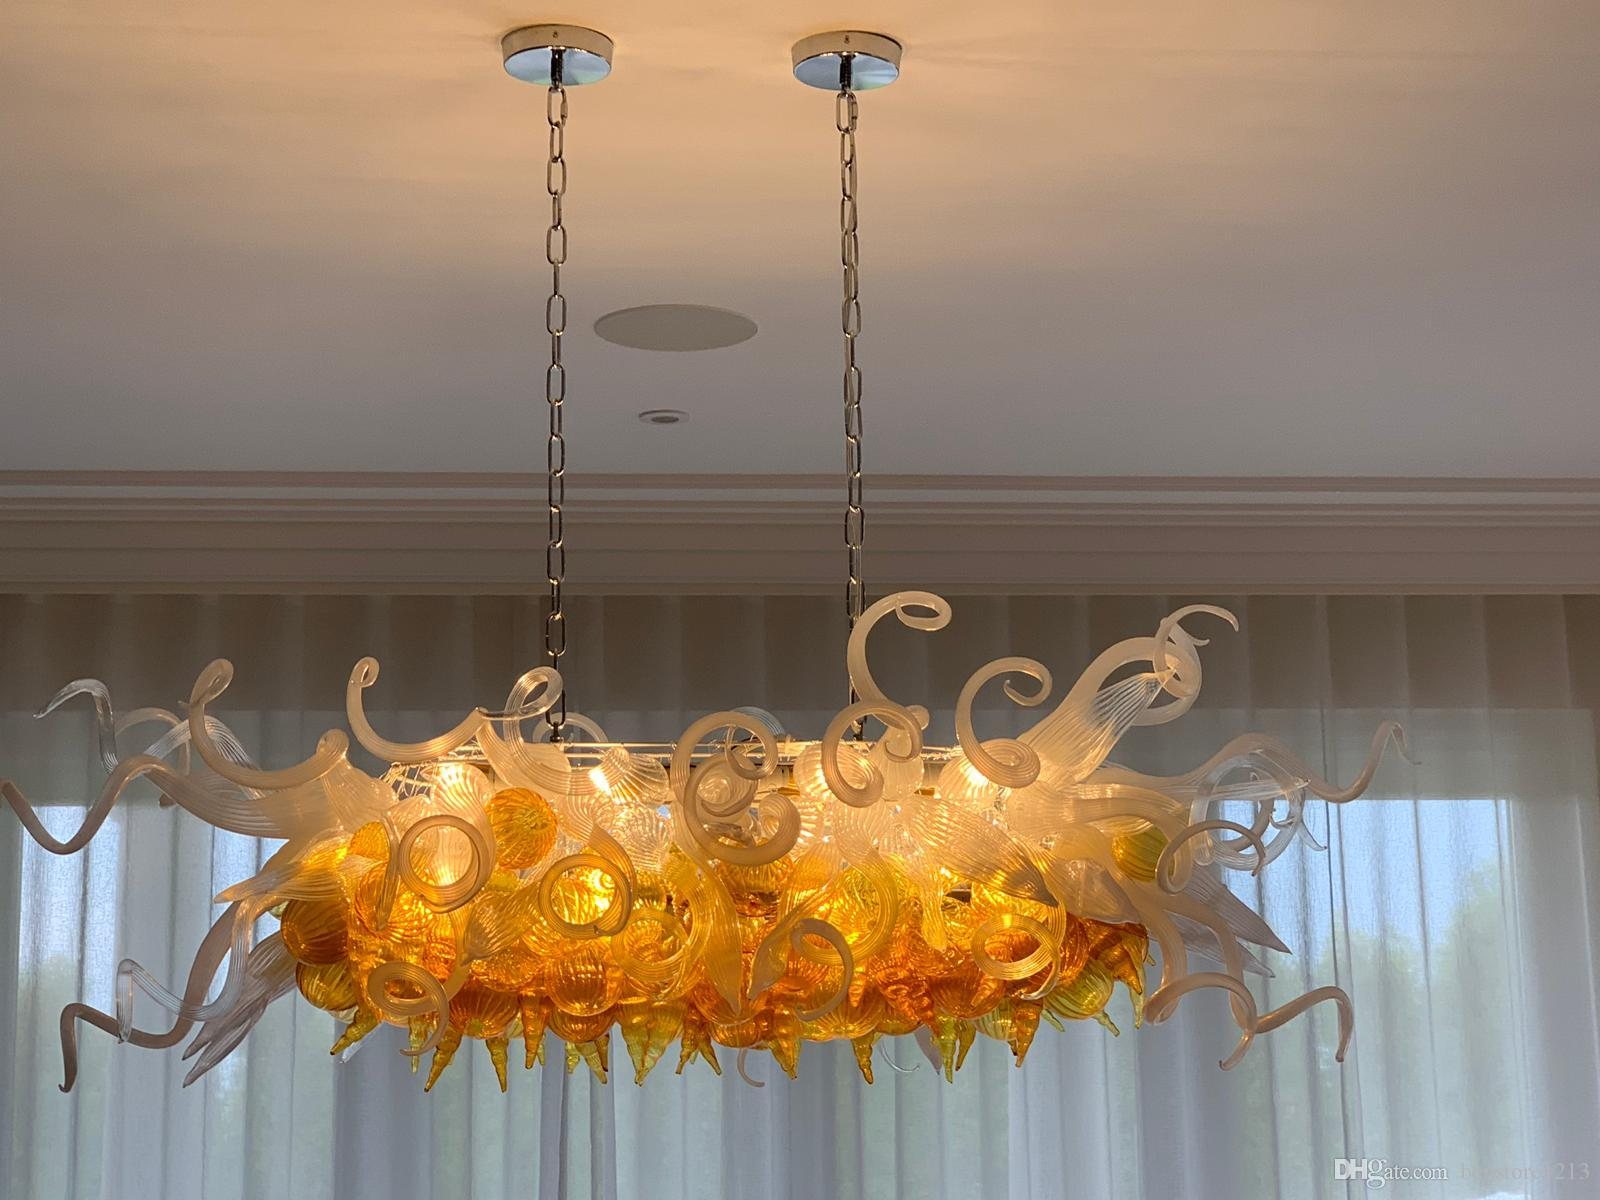 Chandeliers Official Website Luxury Chandelier Lighting Customized Style Bar Light Office Mouth Blown Glass Modern Led Chandeliers Lamp And To Have A Long Life. Lights & Lighting